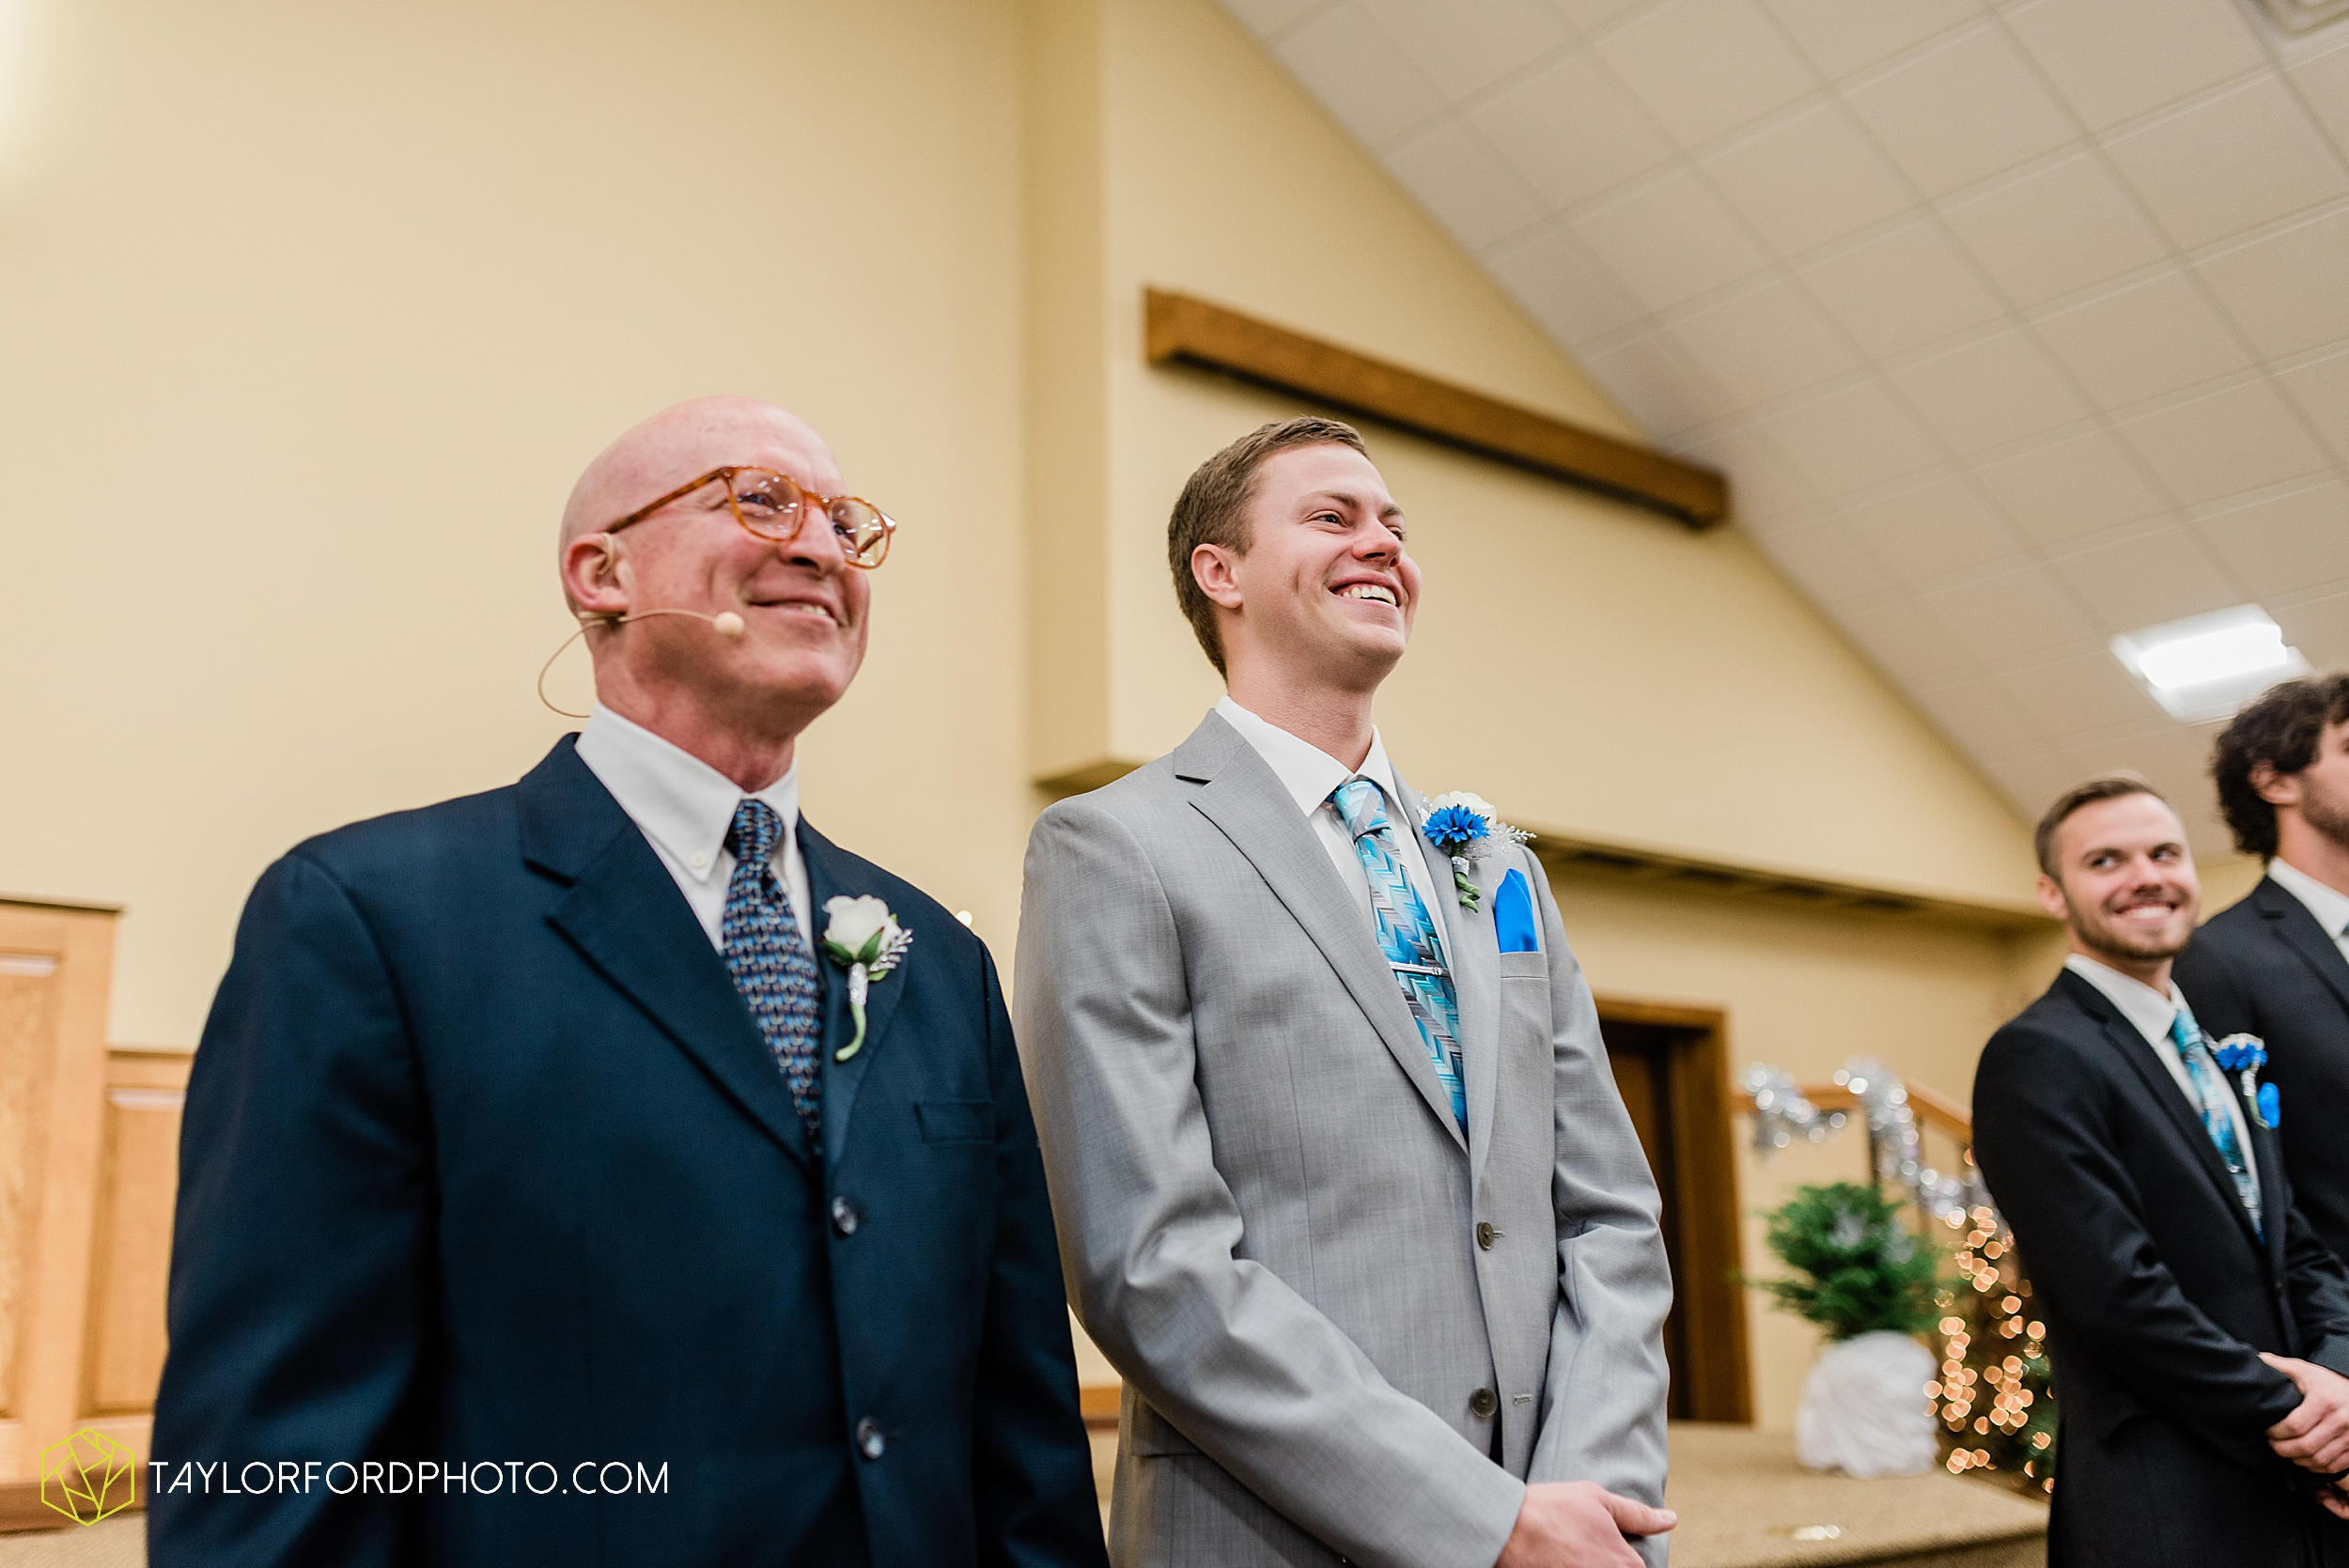 pleasant-view-church-christmas-celina-fraternal-order-of-eagles-reception-wedding-wren-willshire-van-wert-ohio-photography-taylor-ford-hirschy-photographer_2149.jpg